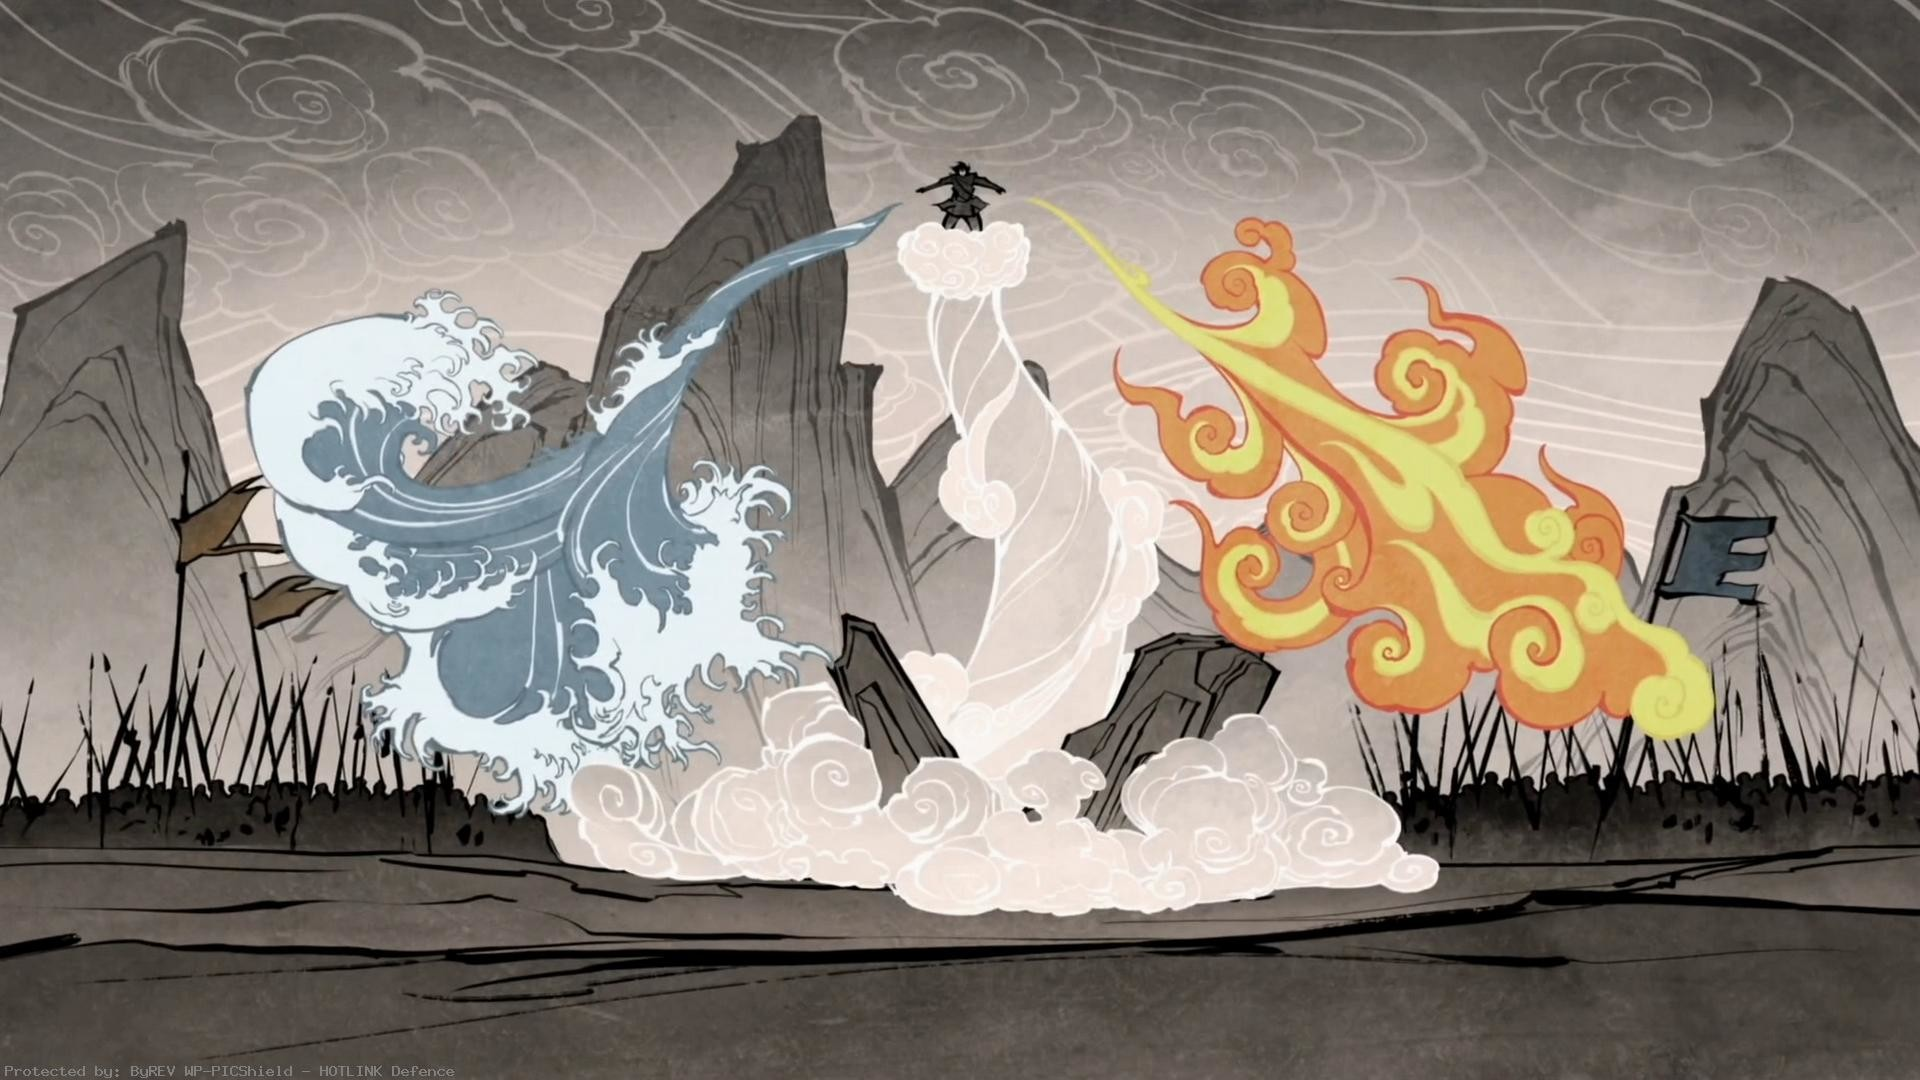 1920x1080 Wan-Legend-of-Korra-wallpaper-wp60013783